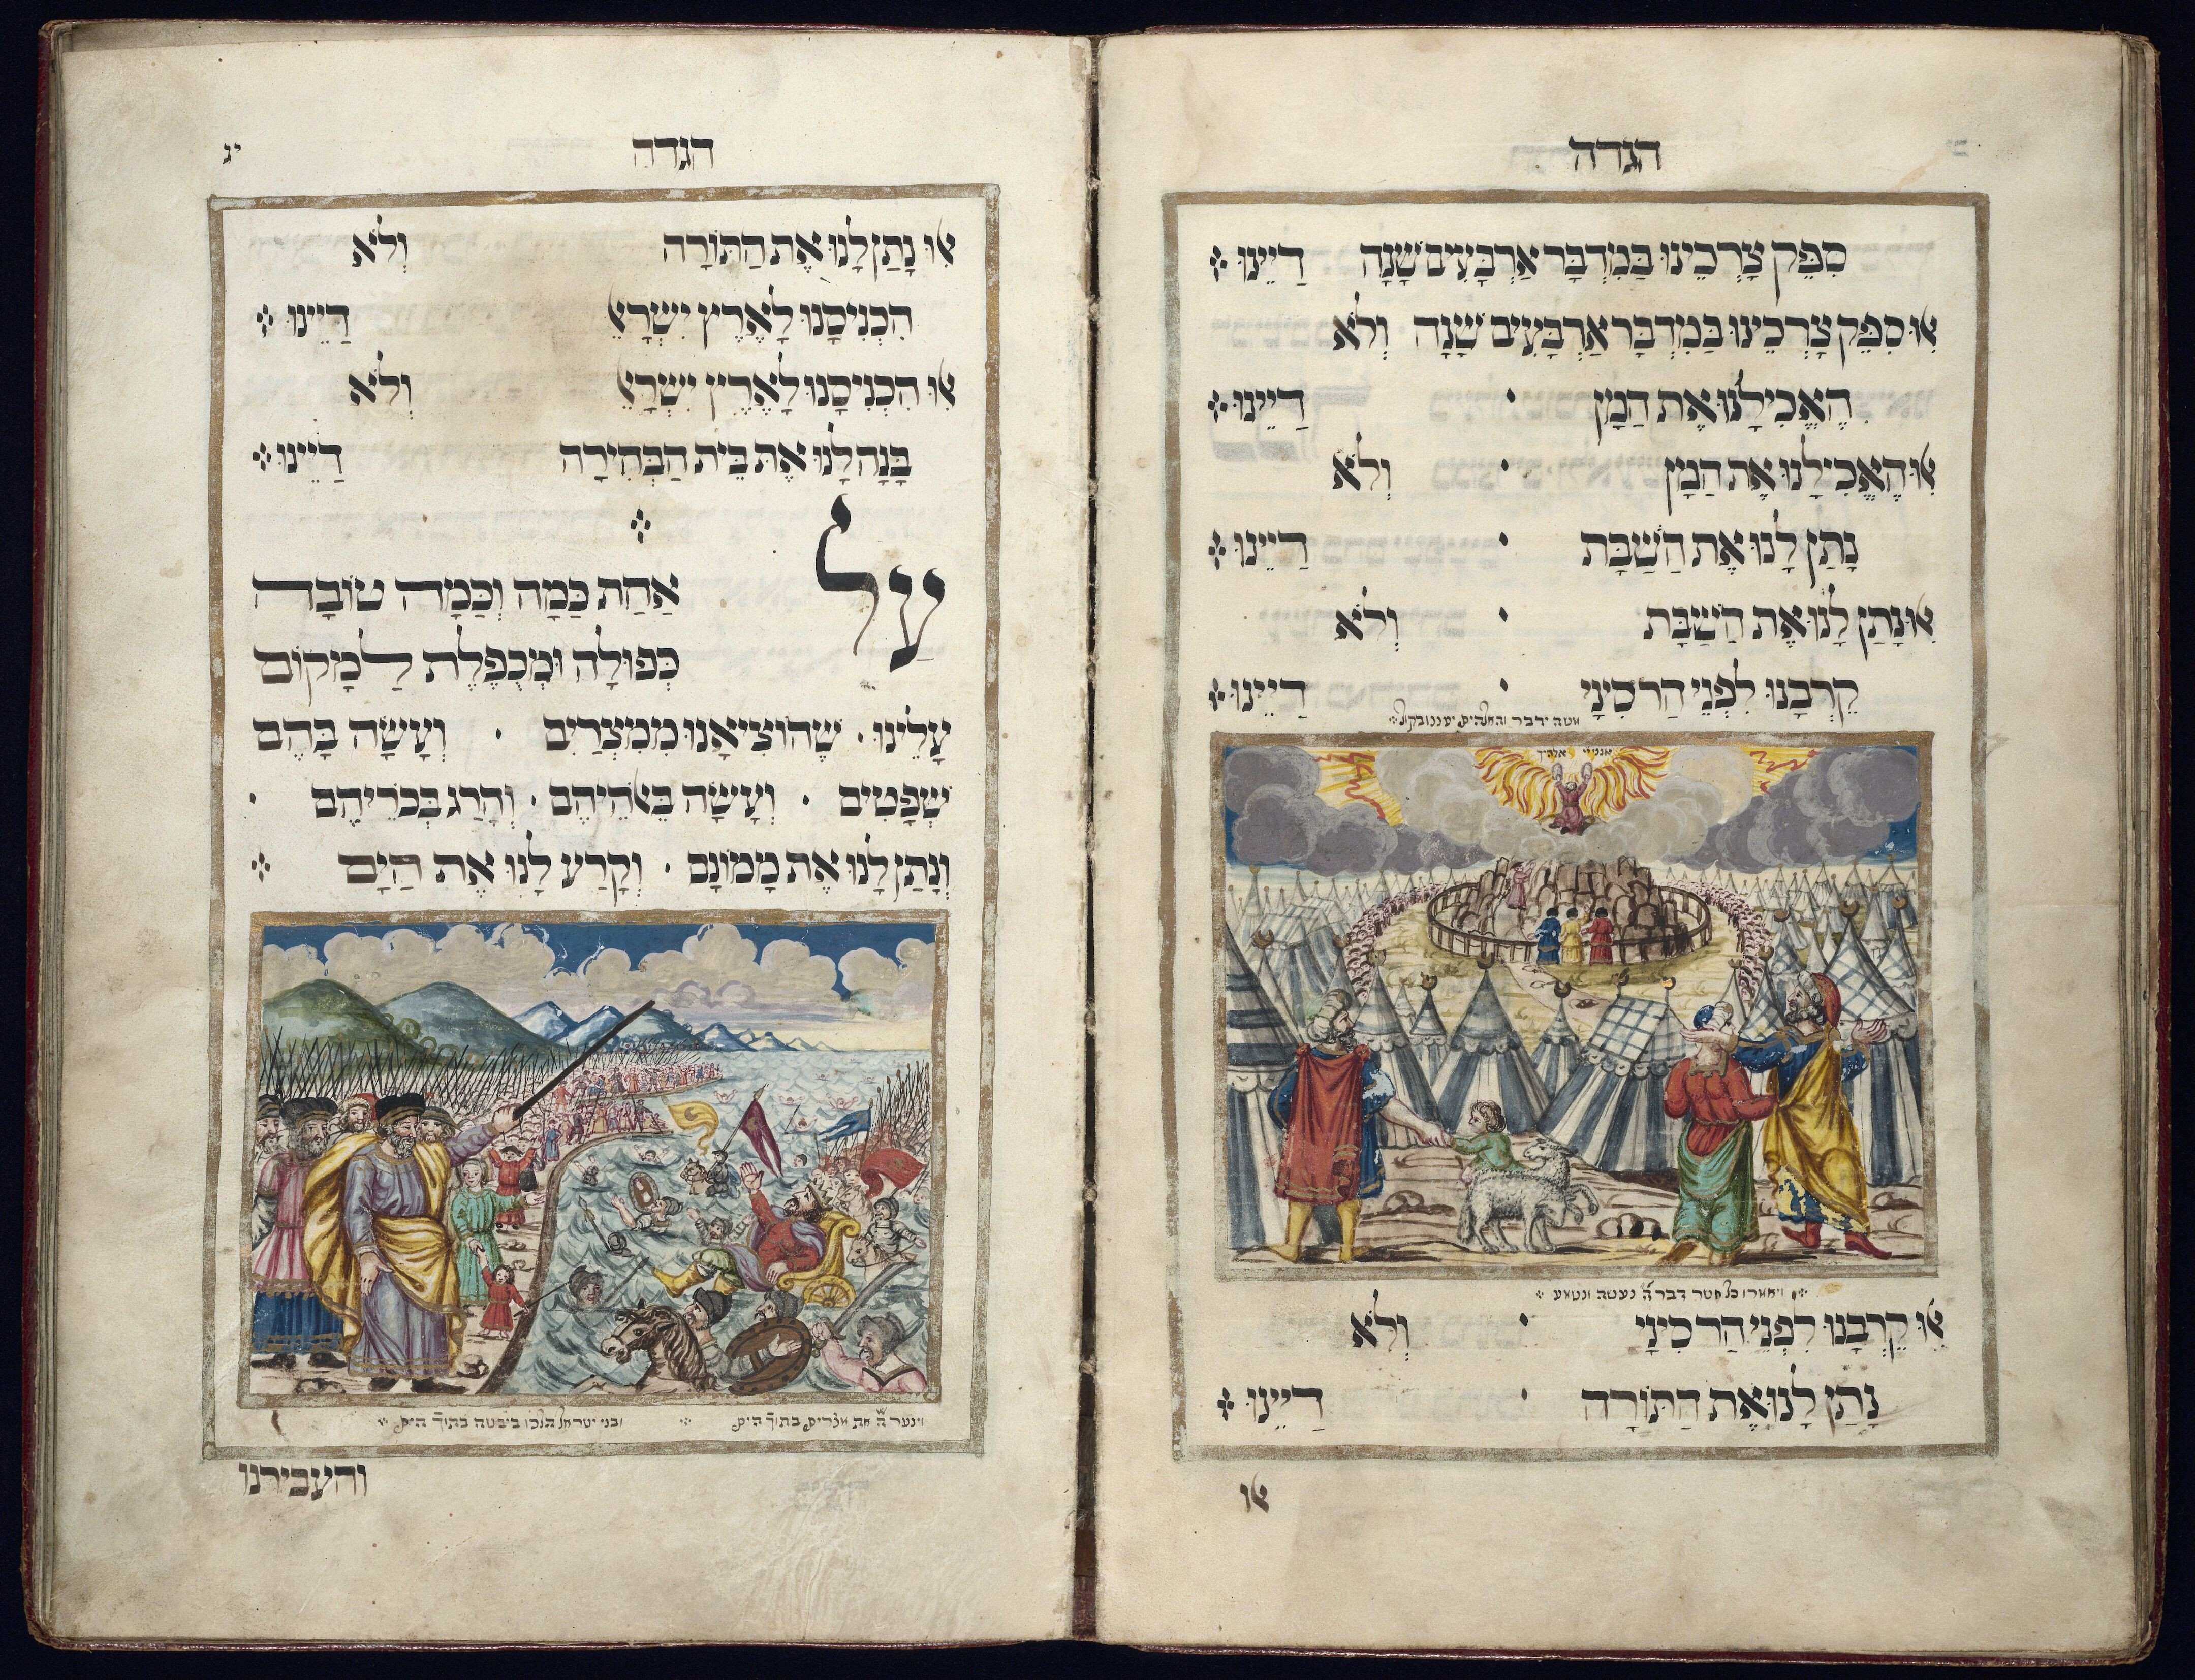 Hebrew +32. A book opening with two facing pages. Both pages have hand-colored illustrations of exodus, each standing at about one third of the whole page. On the left is an image of Pharaoh's troops drowning in the red sea. On the right is an image of Moses receiving the ten commandments.